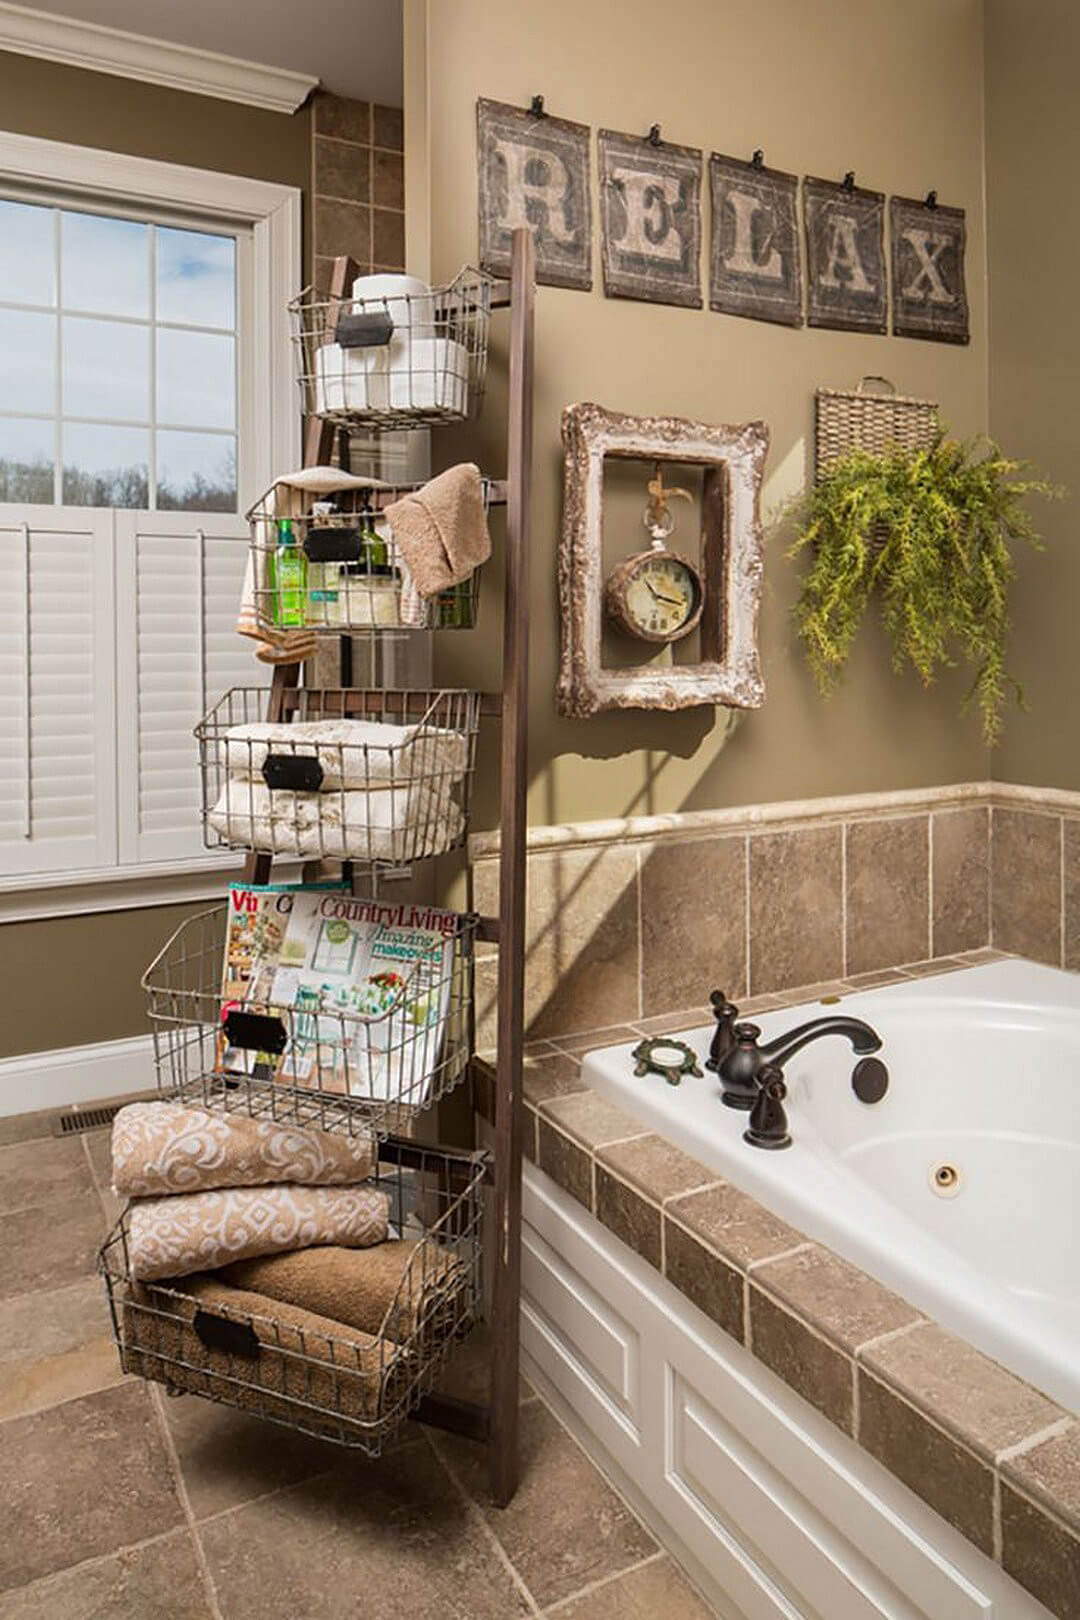 34 Best Towel Storage Ideas And Designs For 2019 intended for sizing 1080 X 1620